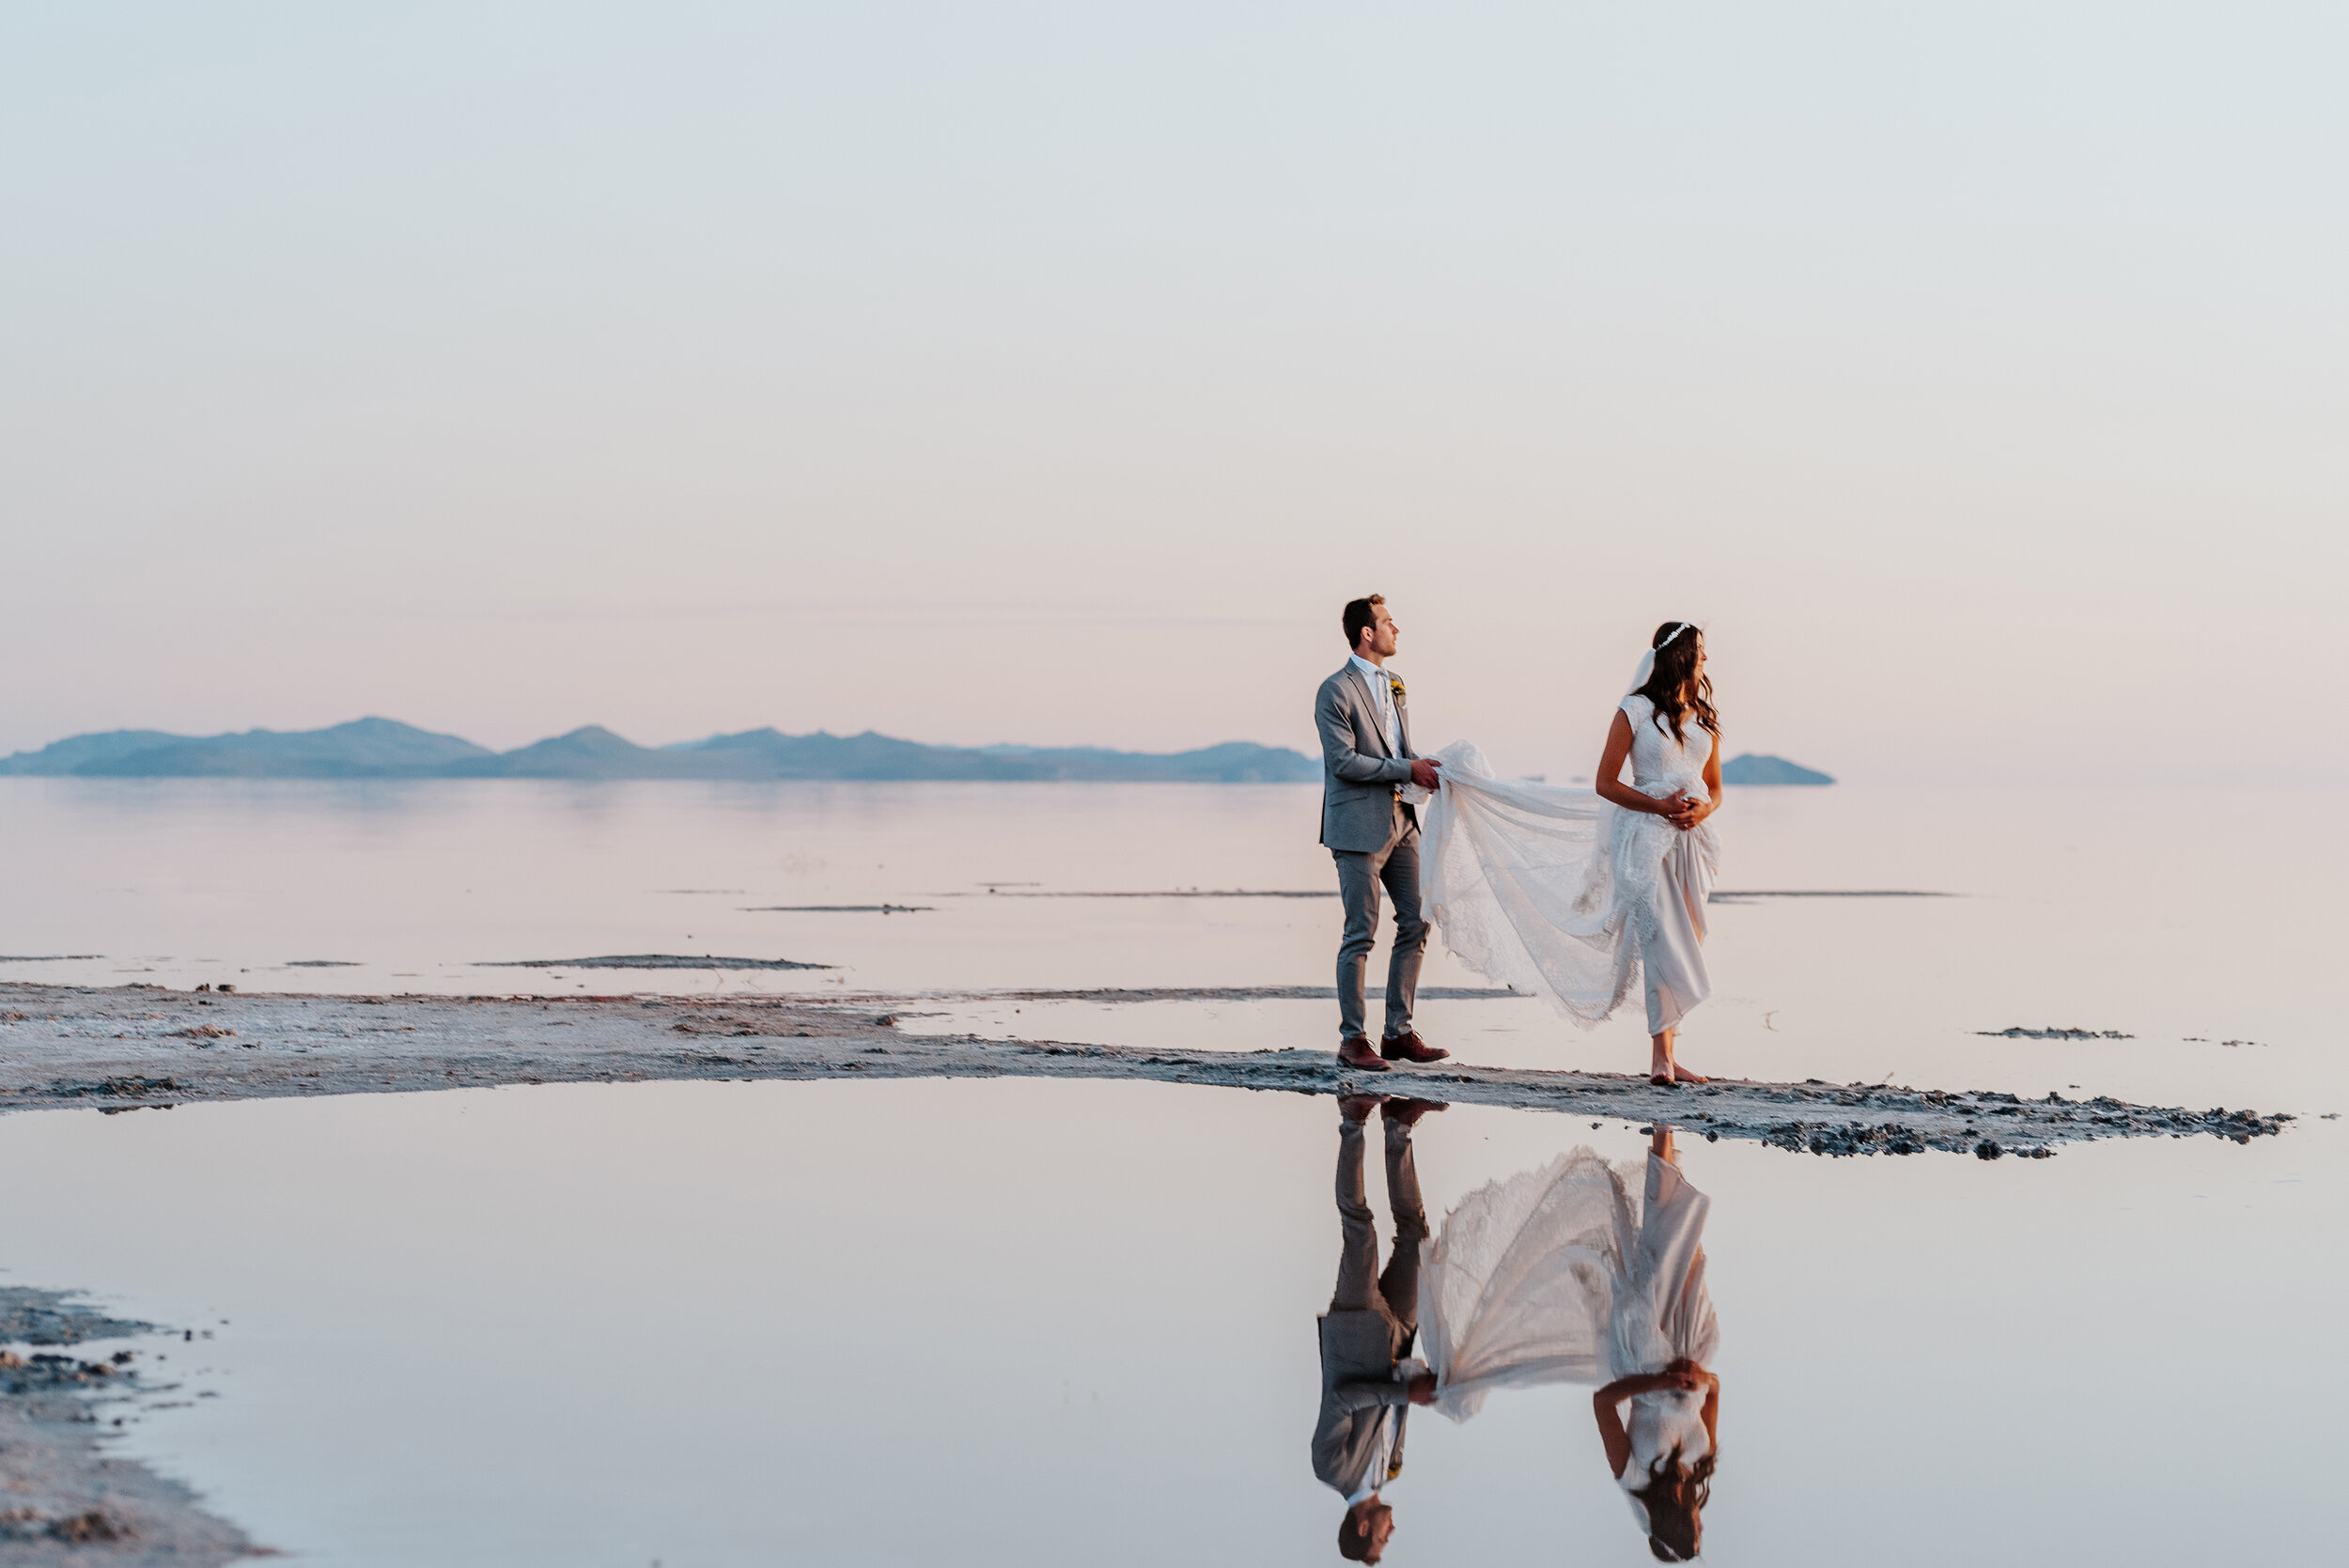 The bride and groom enjoying the last of the sunshine during their formal wedding photography session in Northern Utah. wedding photographer formal session water formals #spiraljetty #GreatSaltLake #formalsession #SaltFlats #sunsetphotosession #NorthernUtah #weddingphotographer #formalphotographer #brideandgroom #outdoorformals #weddingformalphotography